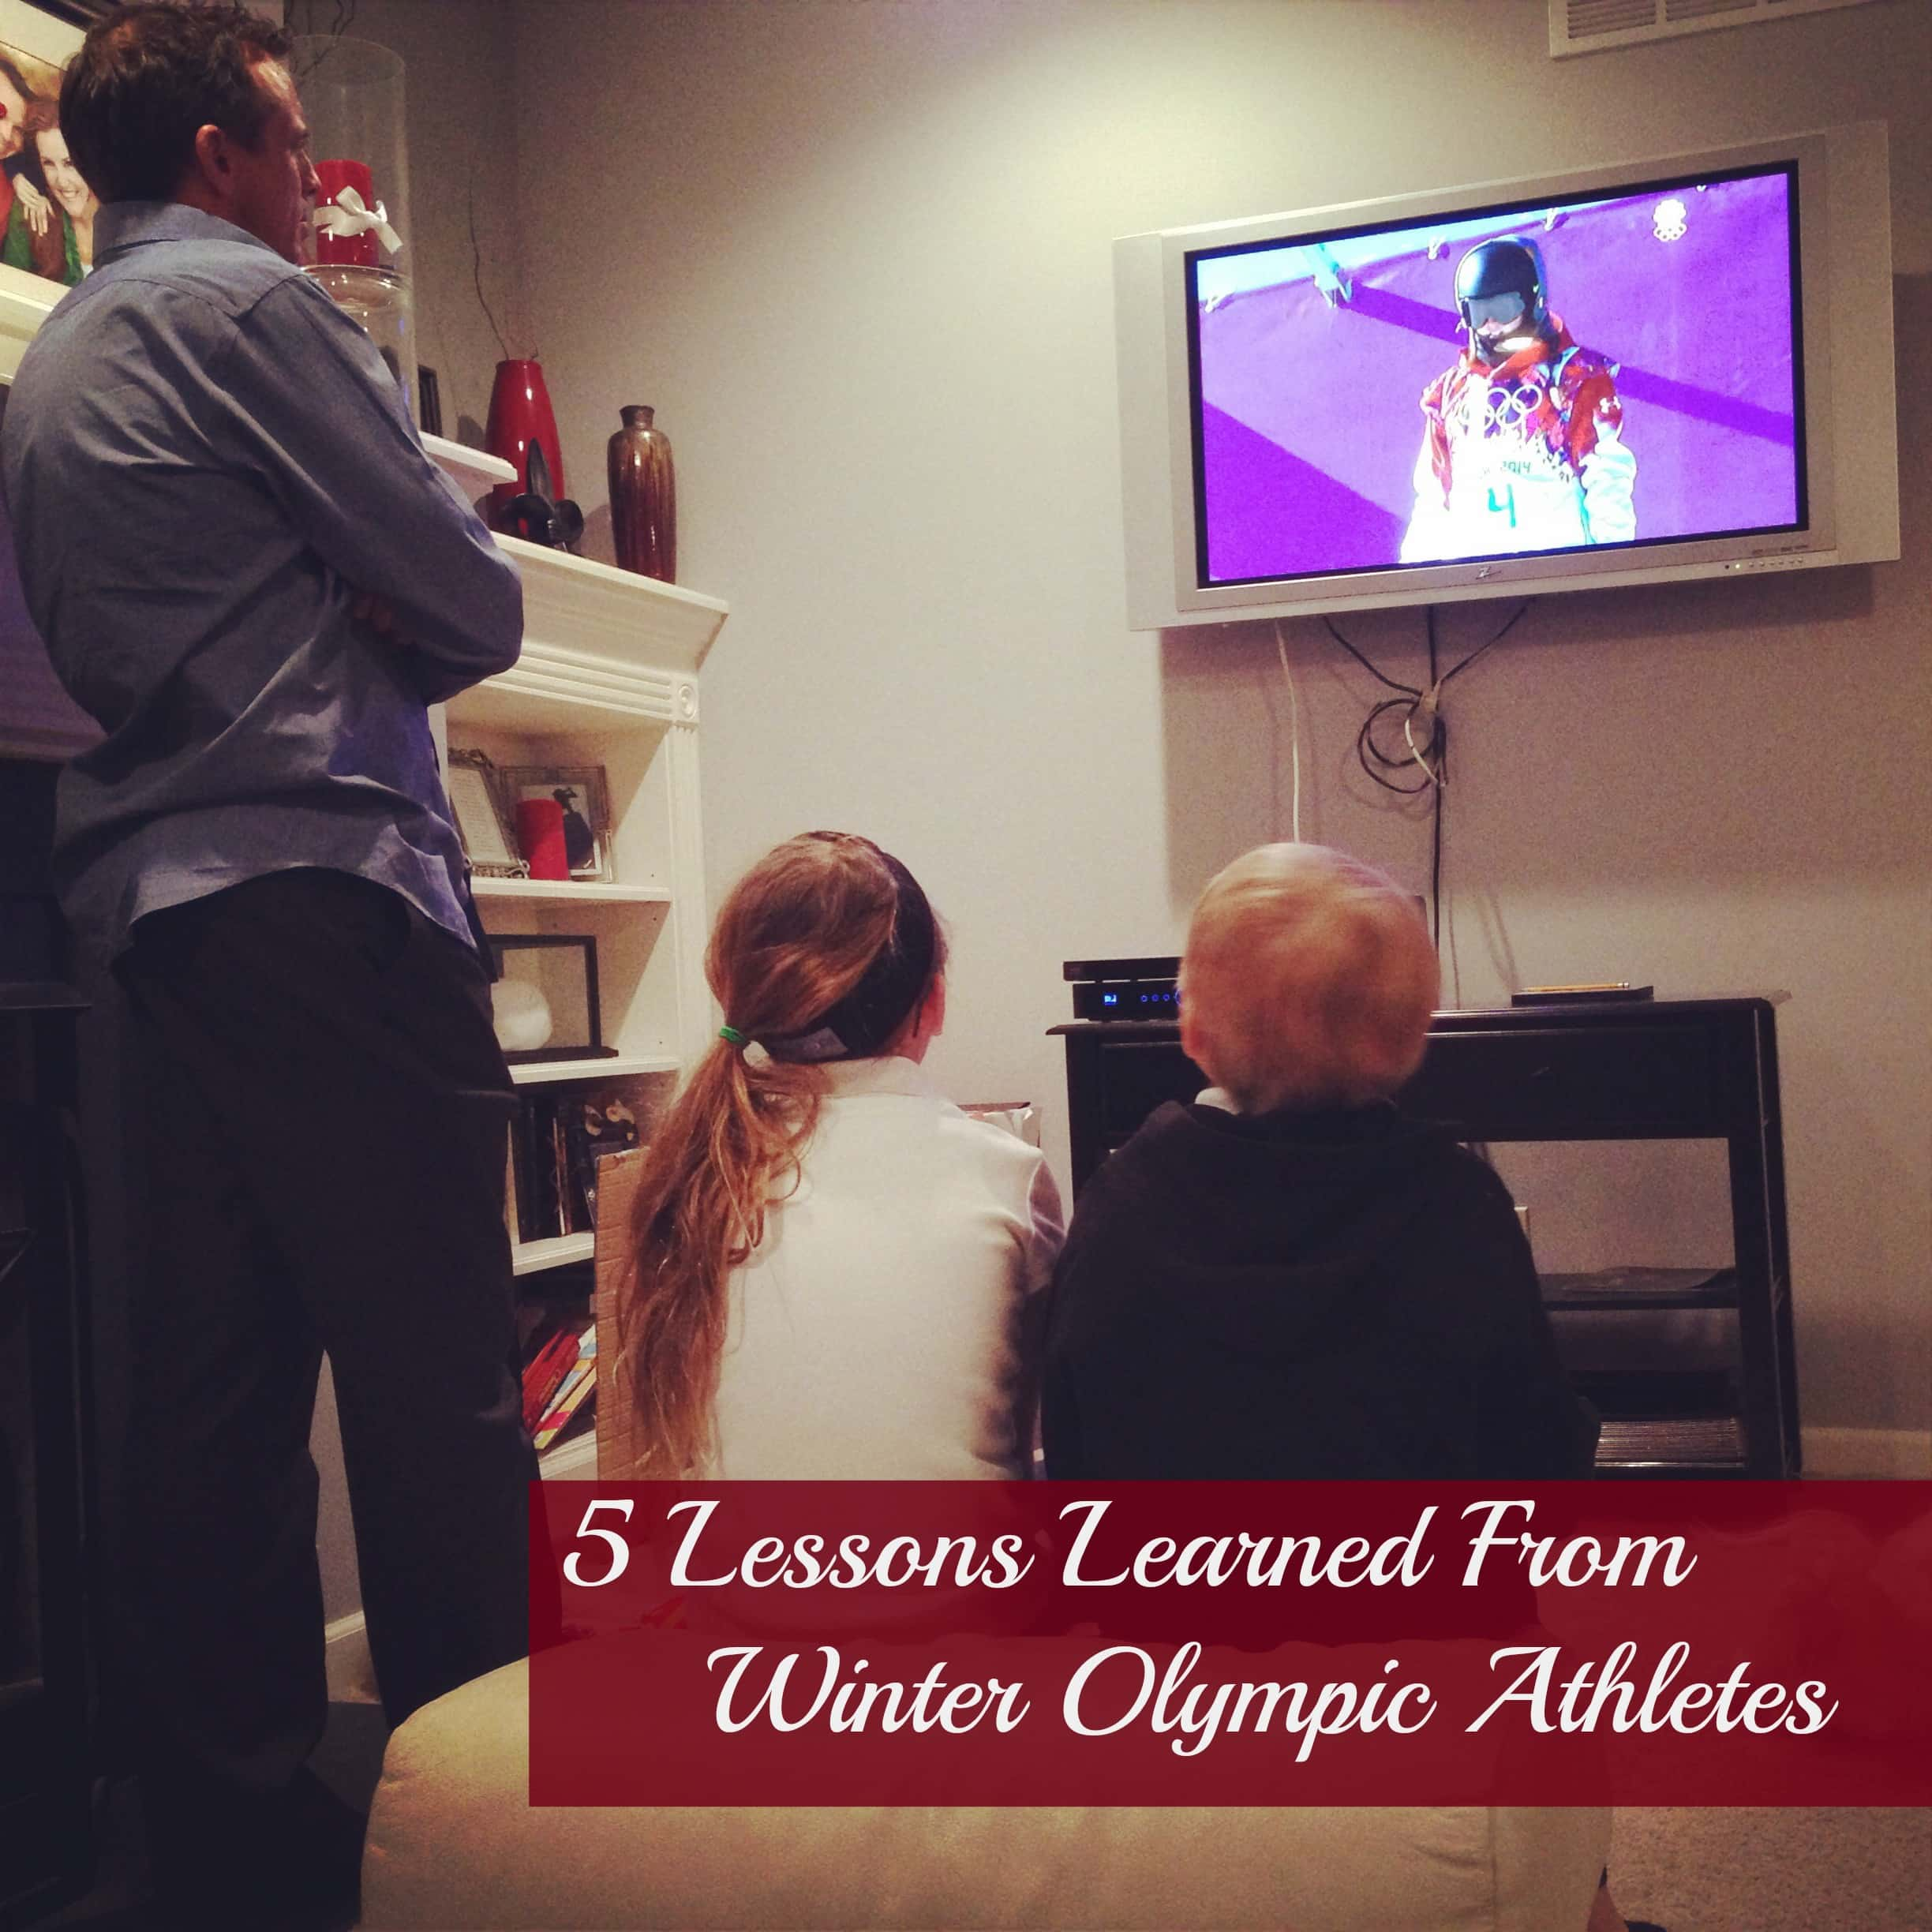 5 Lessons Learned From Winter Olympic Athletes